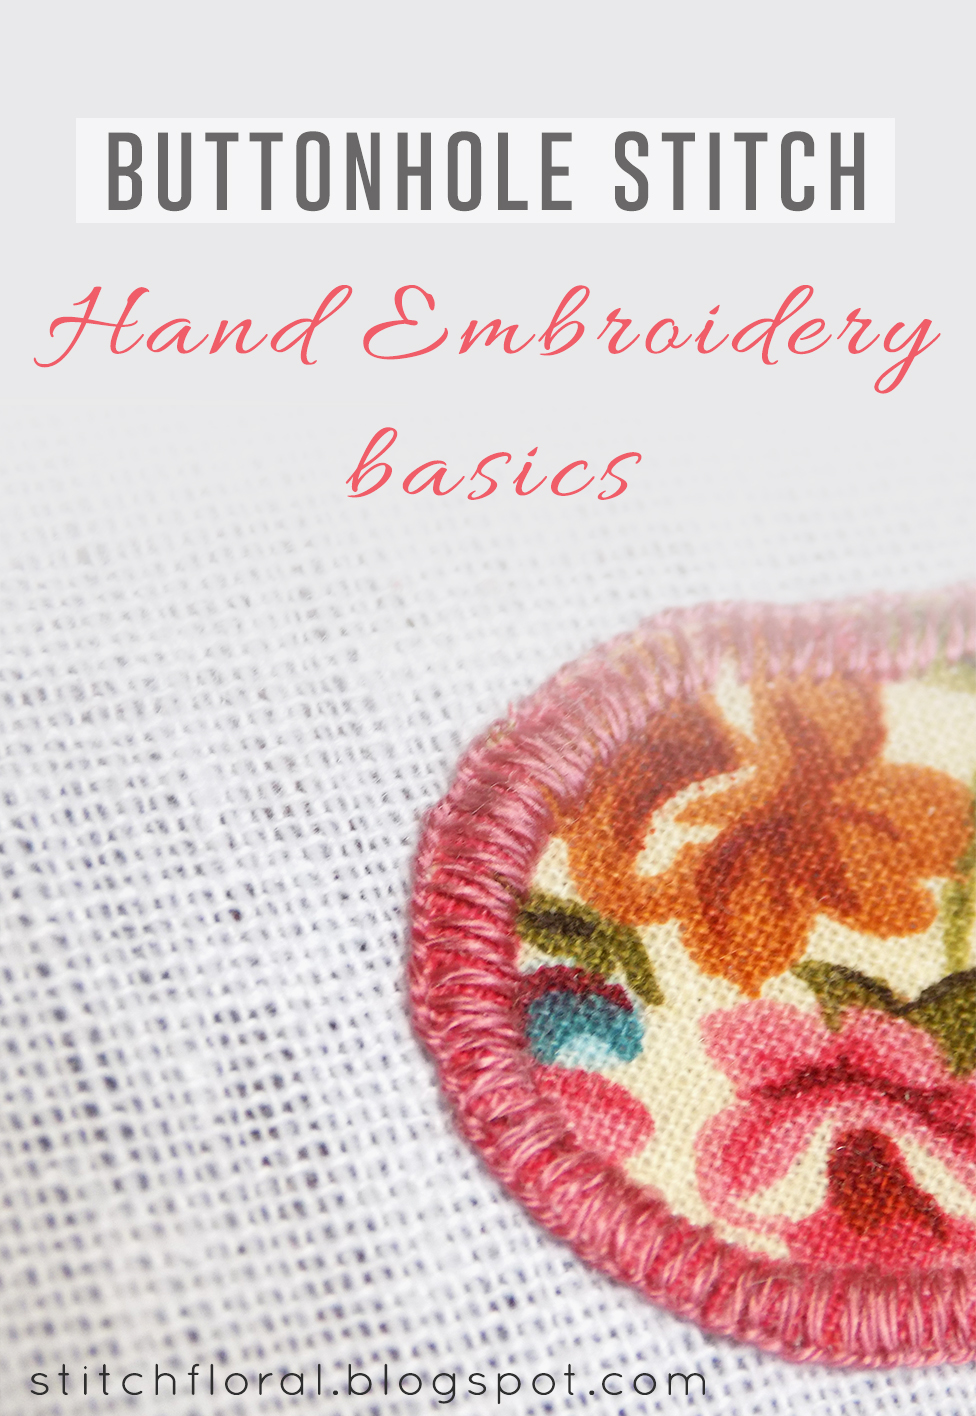 embroidery templates.html